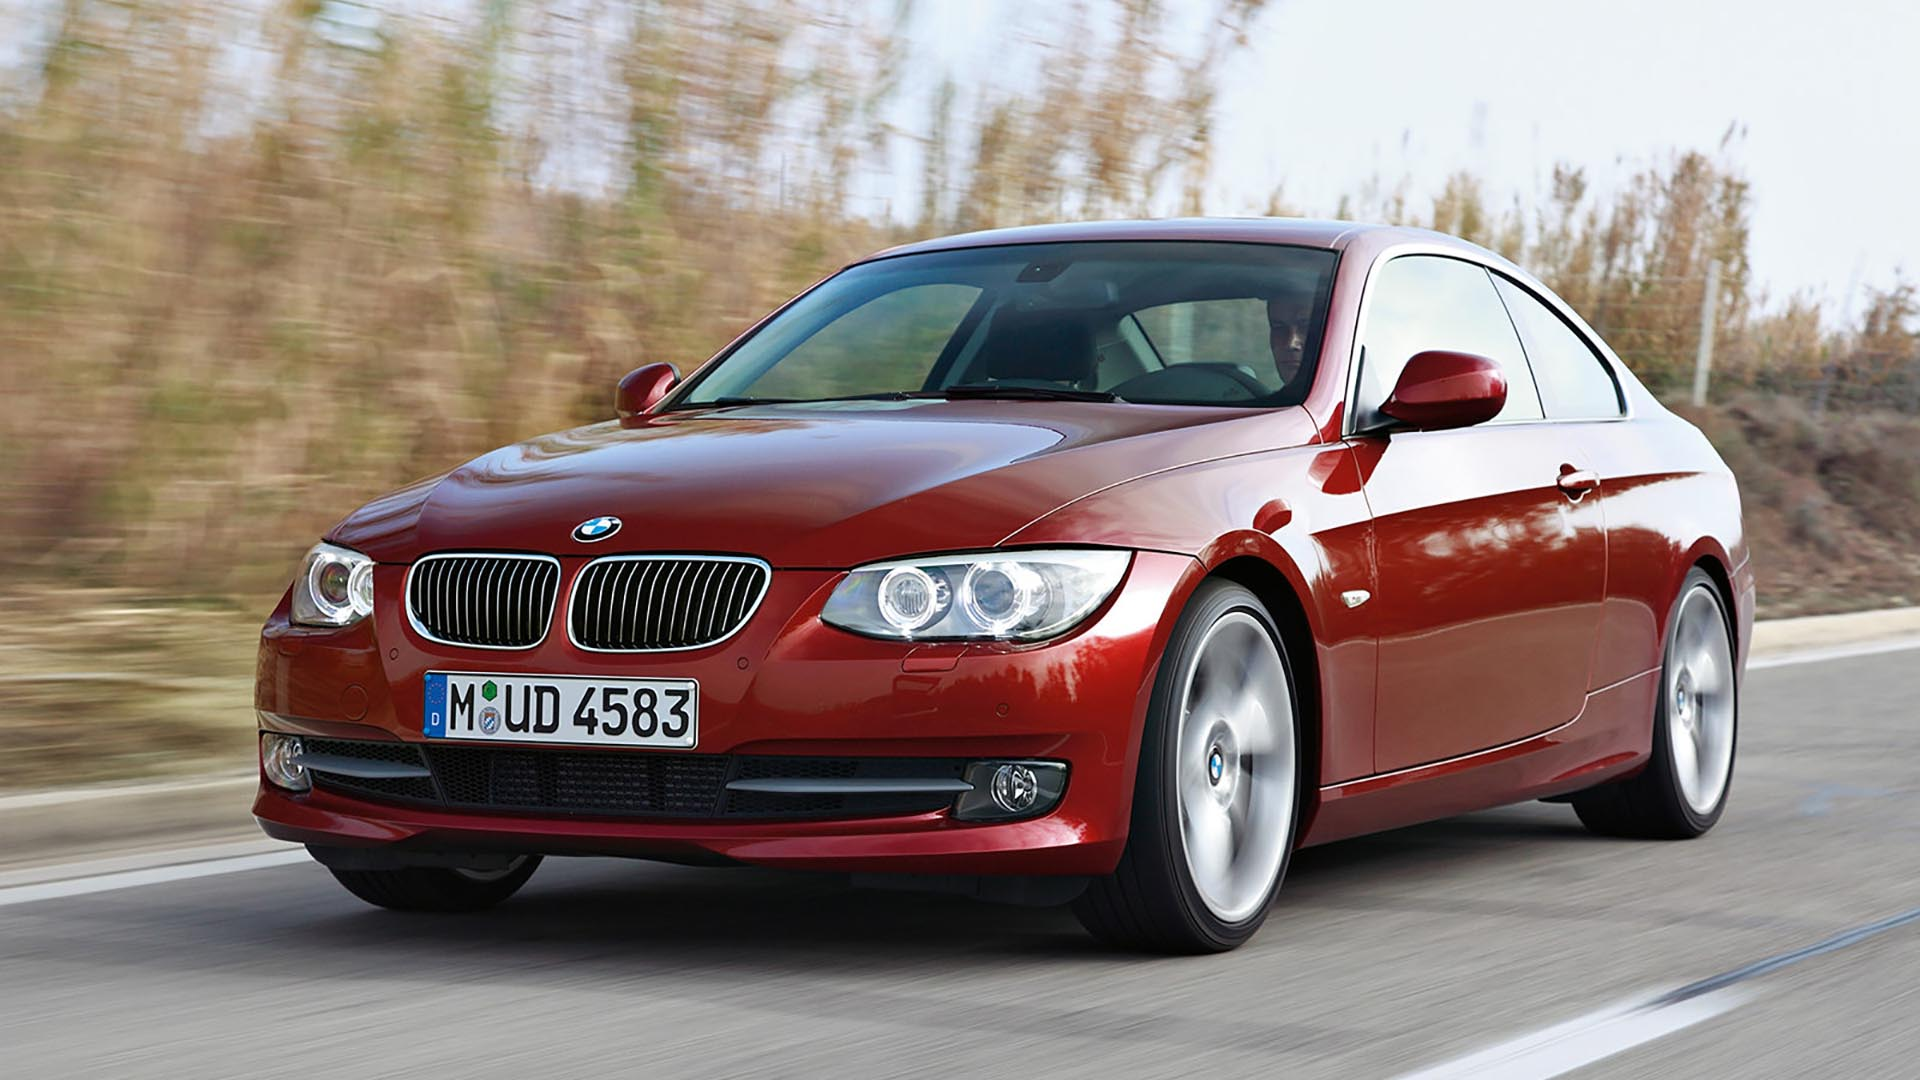 It's Complicated: 5 Difficult European Cars That We Love Anyway